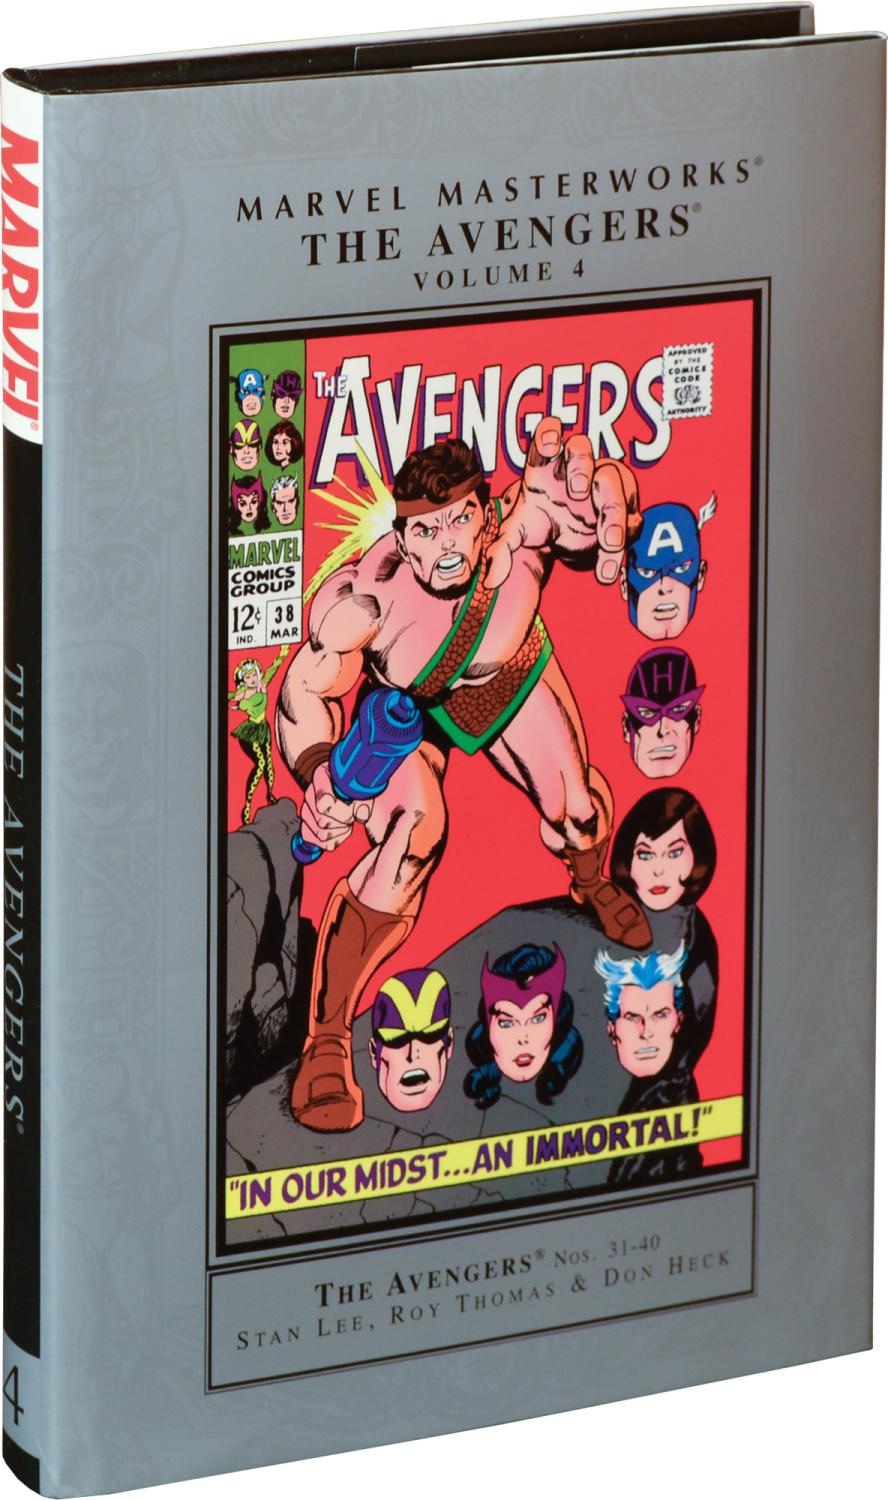 The Avengers Nos. 31-40 [Marvel Masterworks Volume 4] (First Edition): Stan Lee and Roy Thomas (...